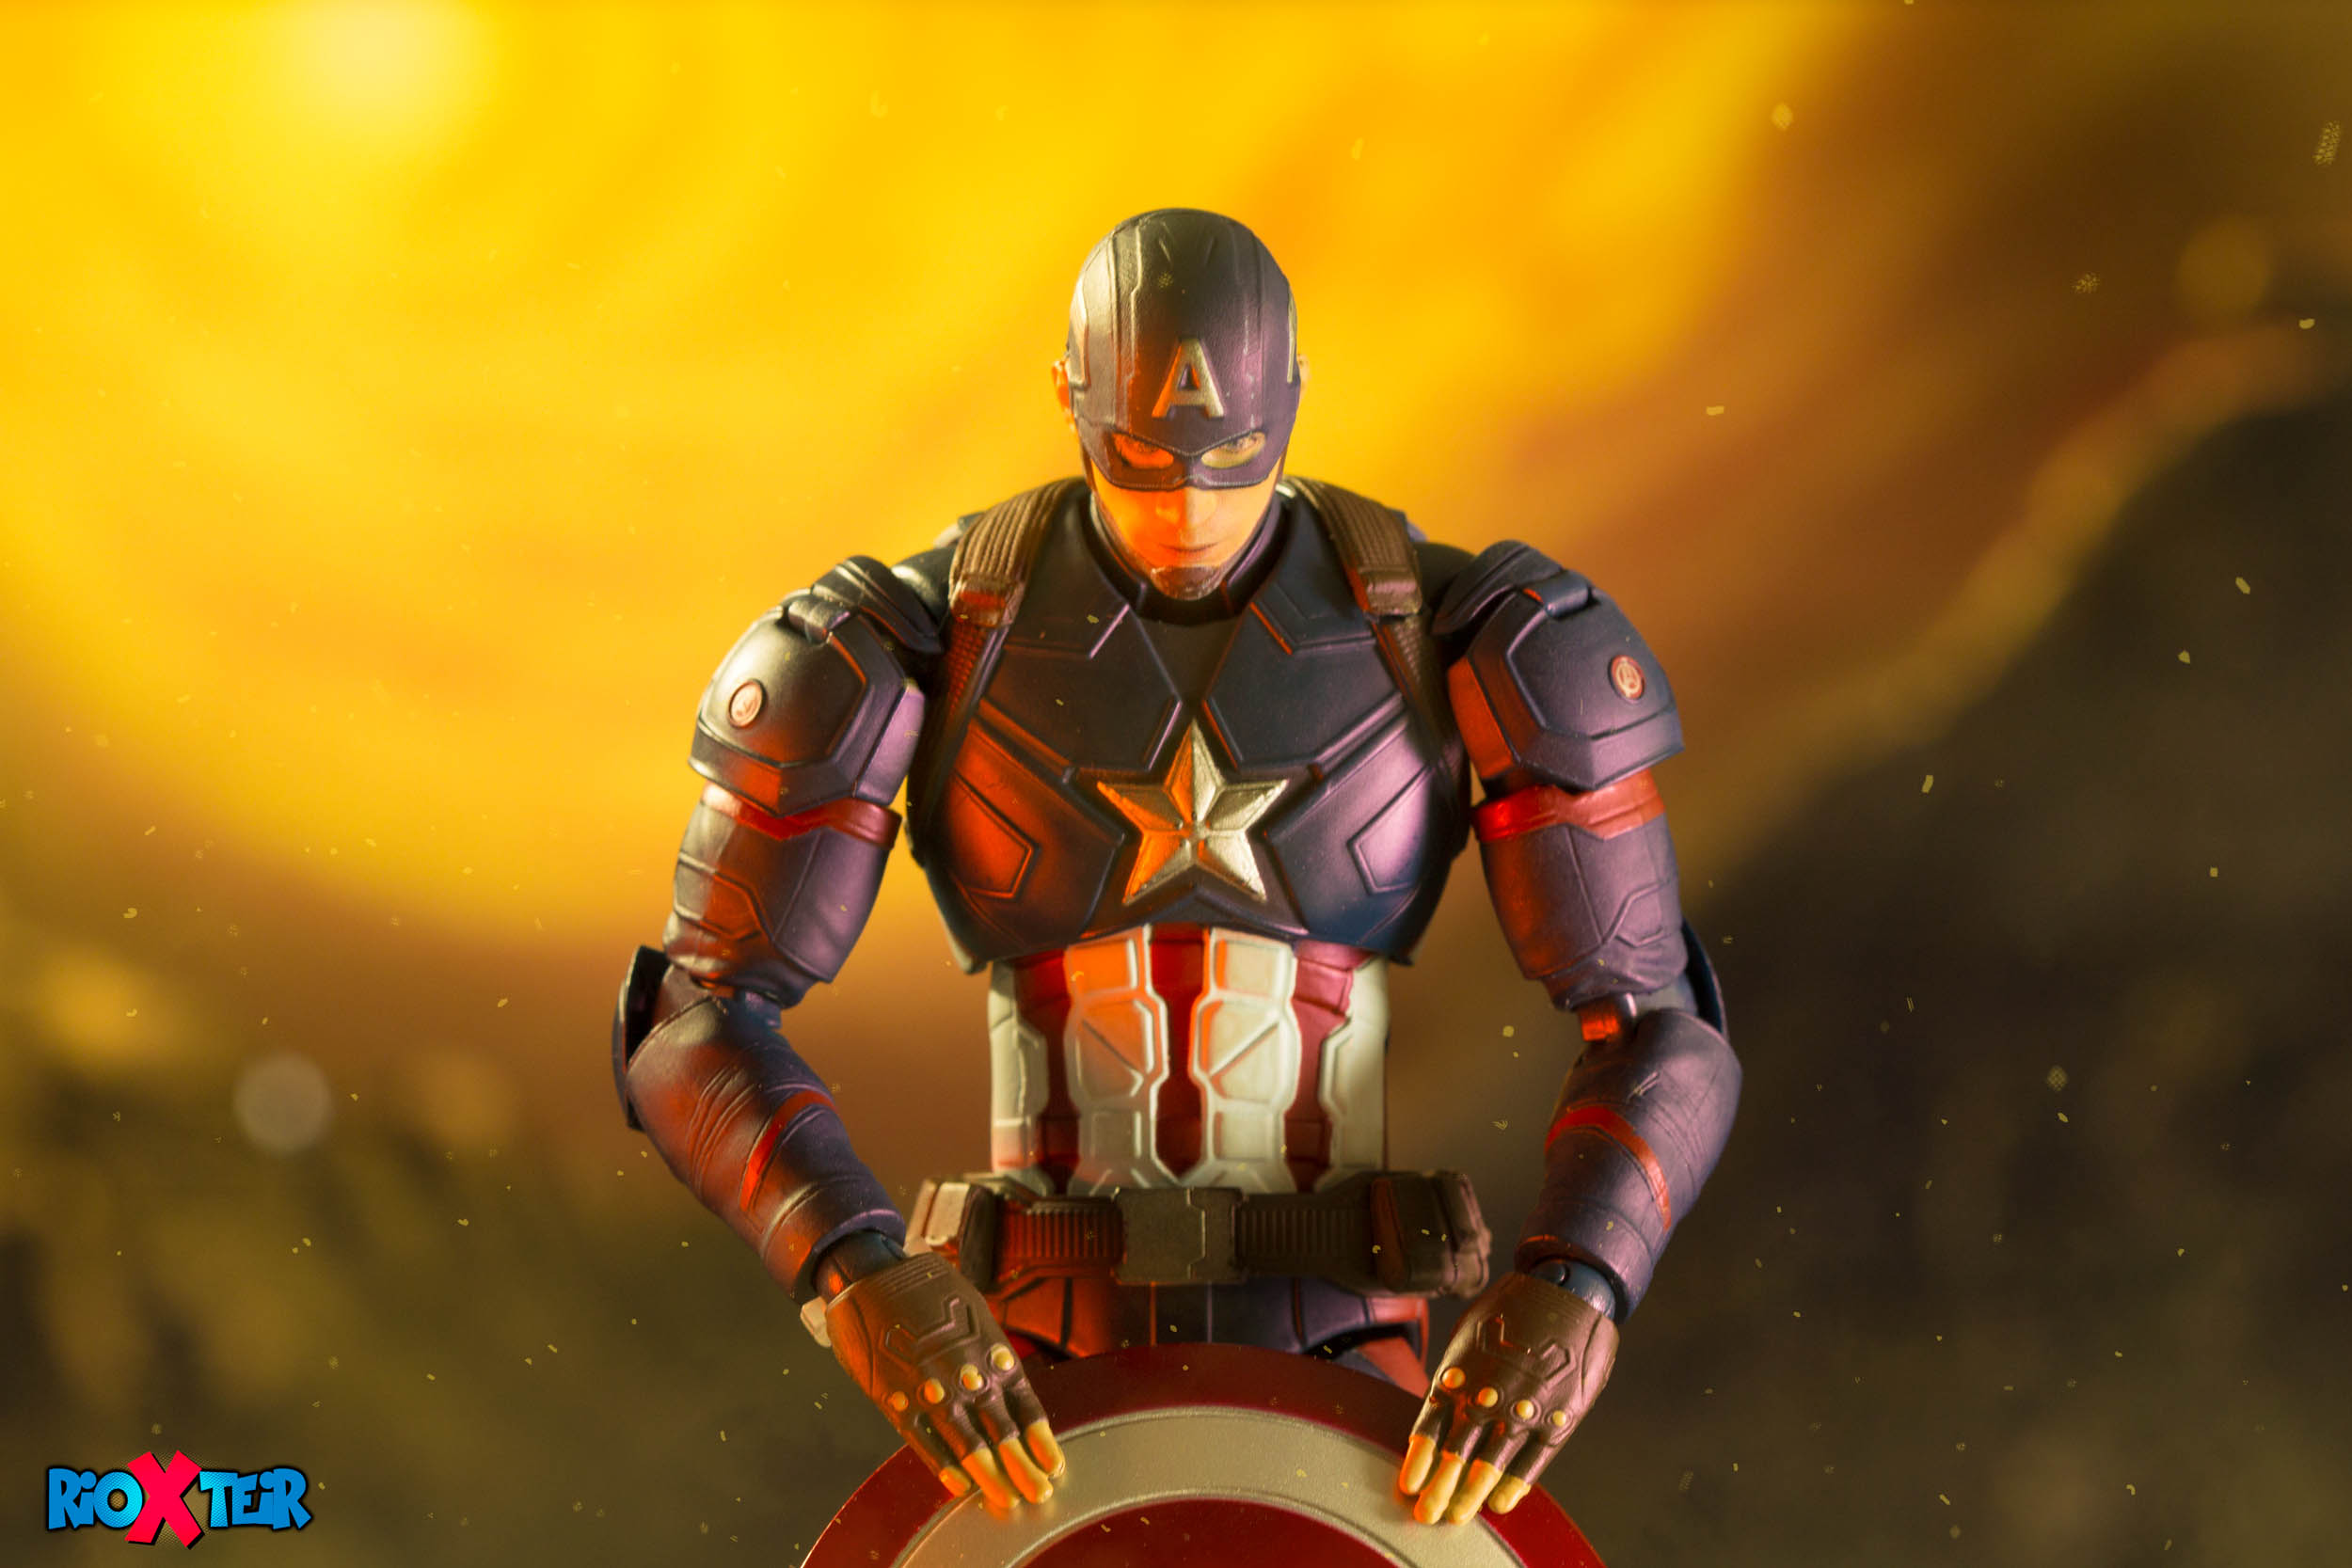 S.H.Figuarts Captain America Shield Avengers Infinity War